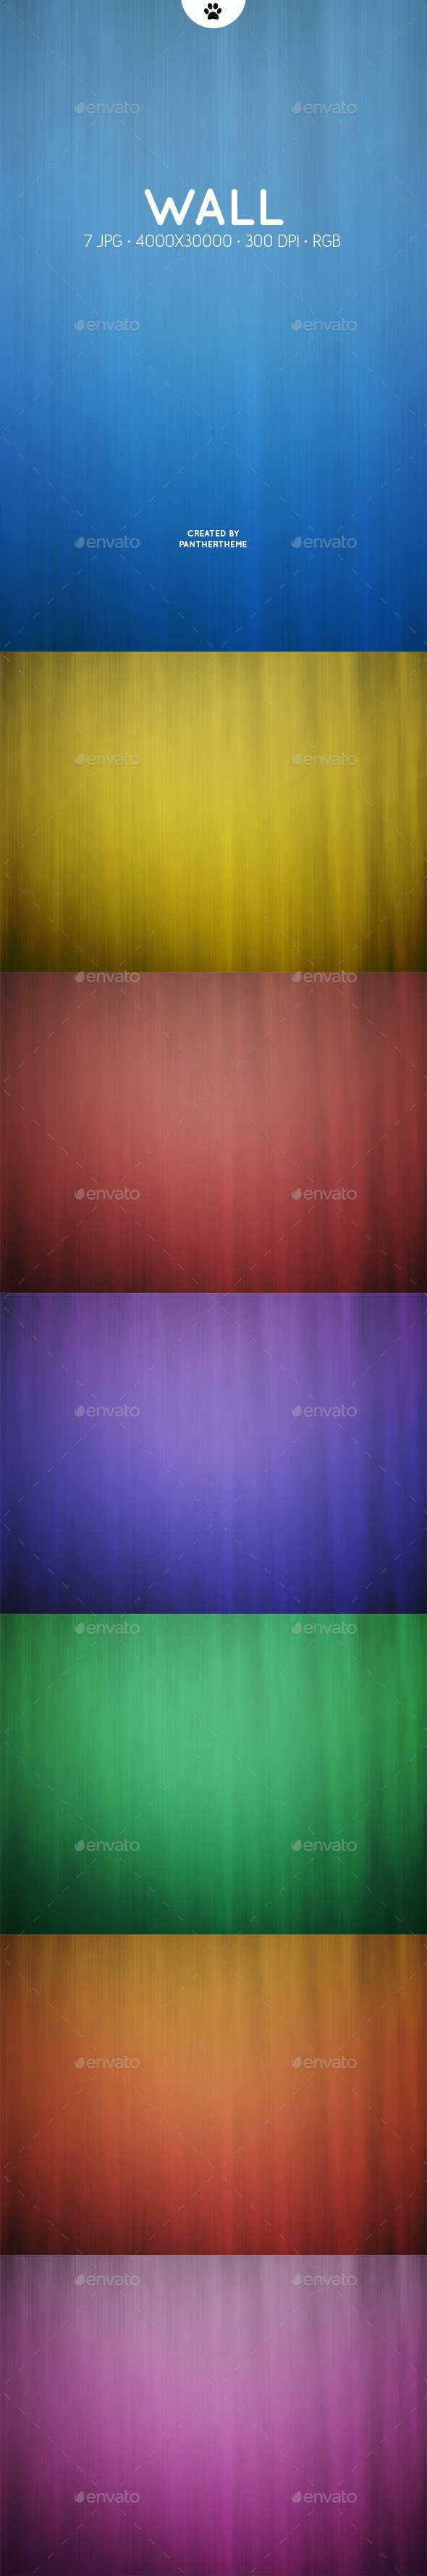 Gradient Wall Backgrounds - Abstract Backgrounds